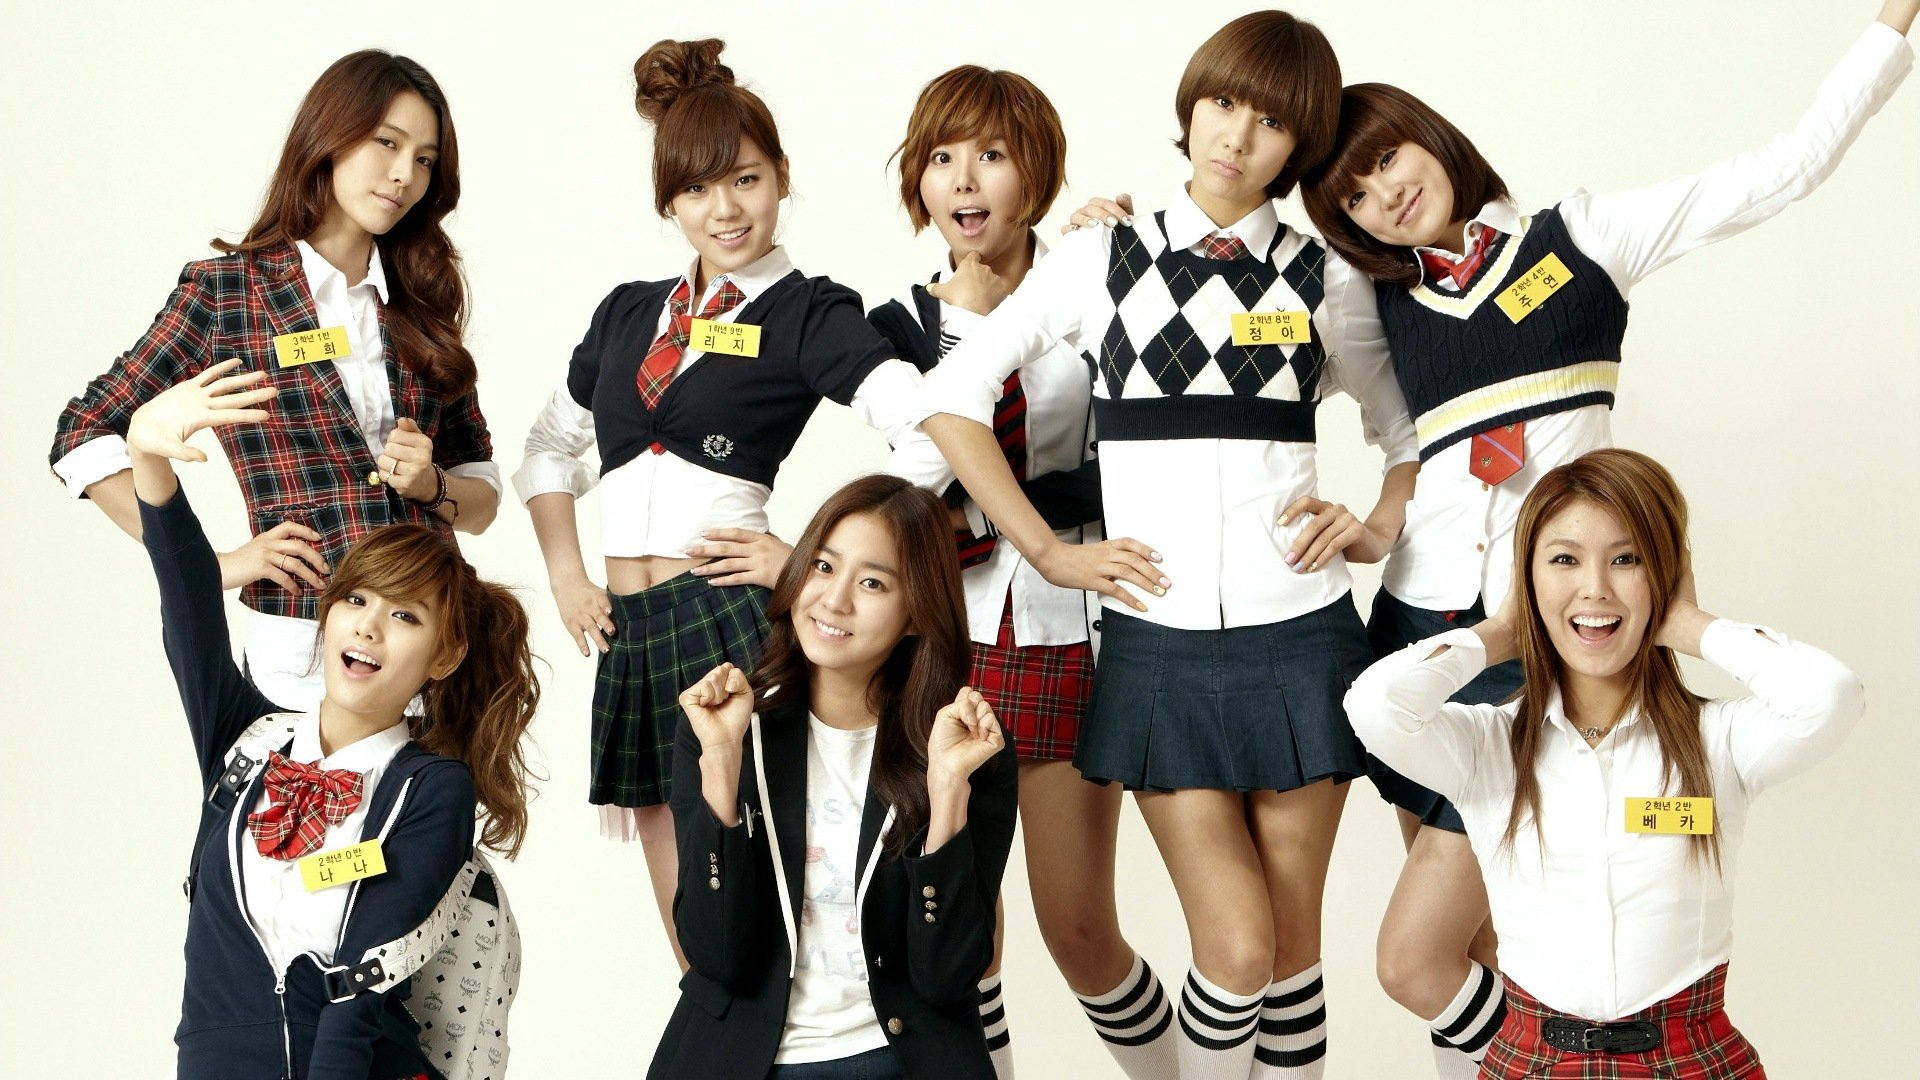 Download hd 1080p After School PC background ID:324967 for free